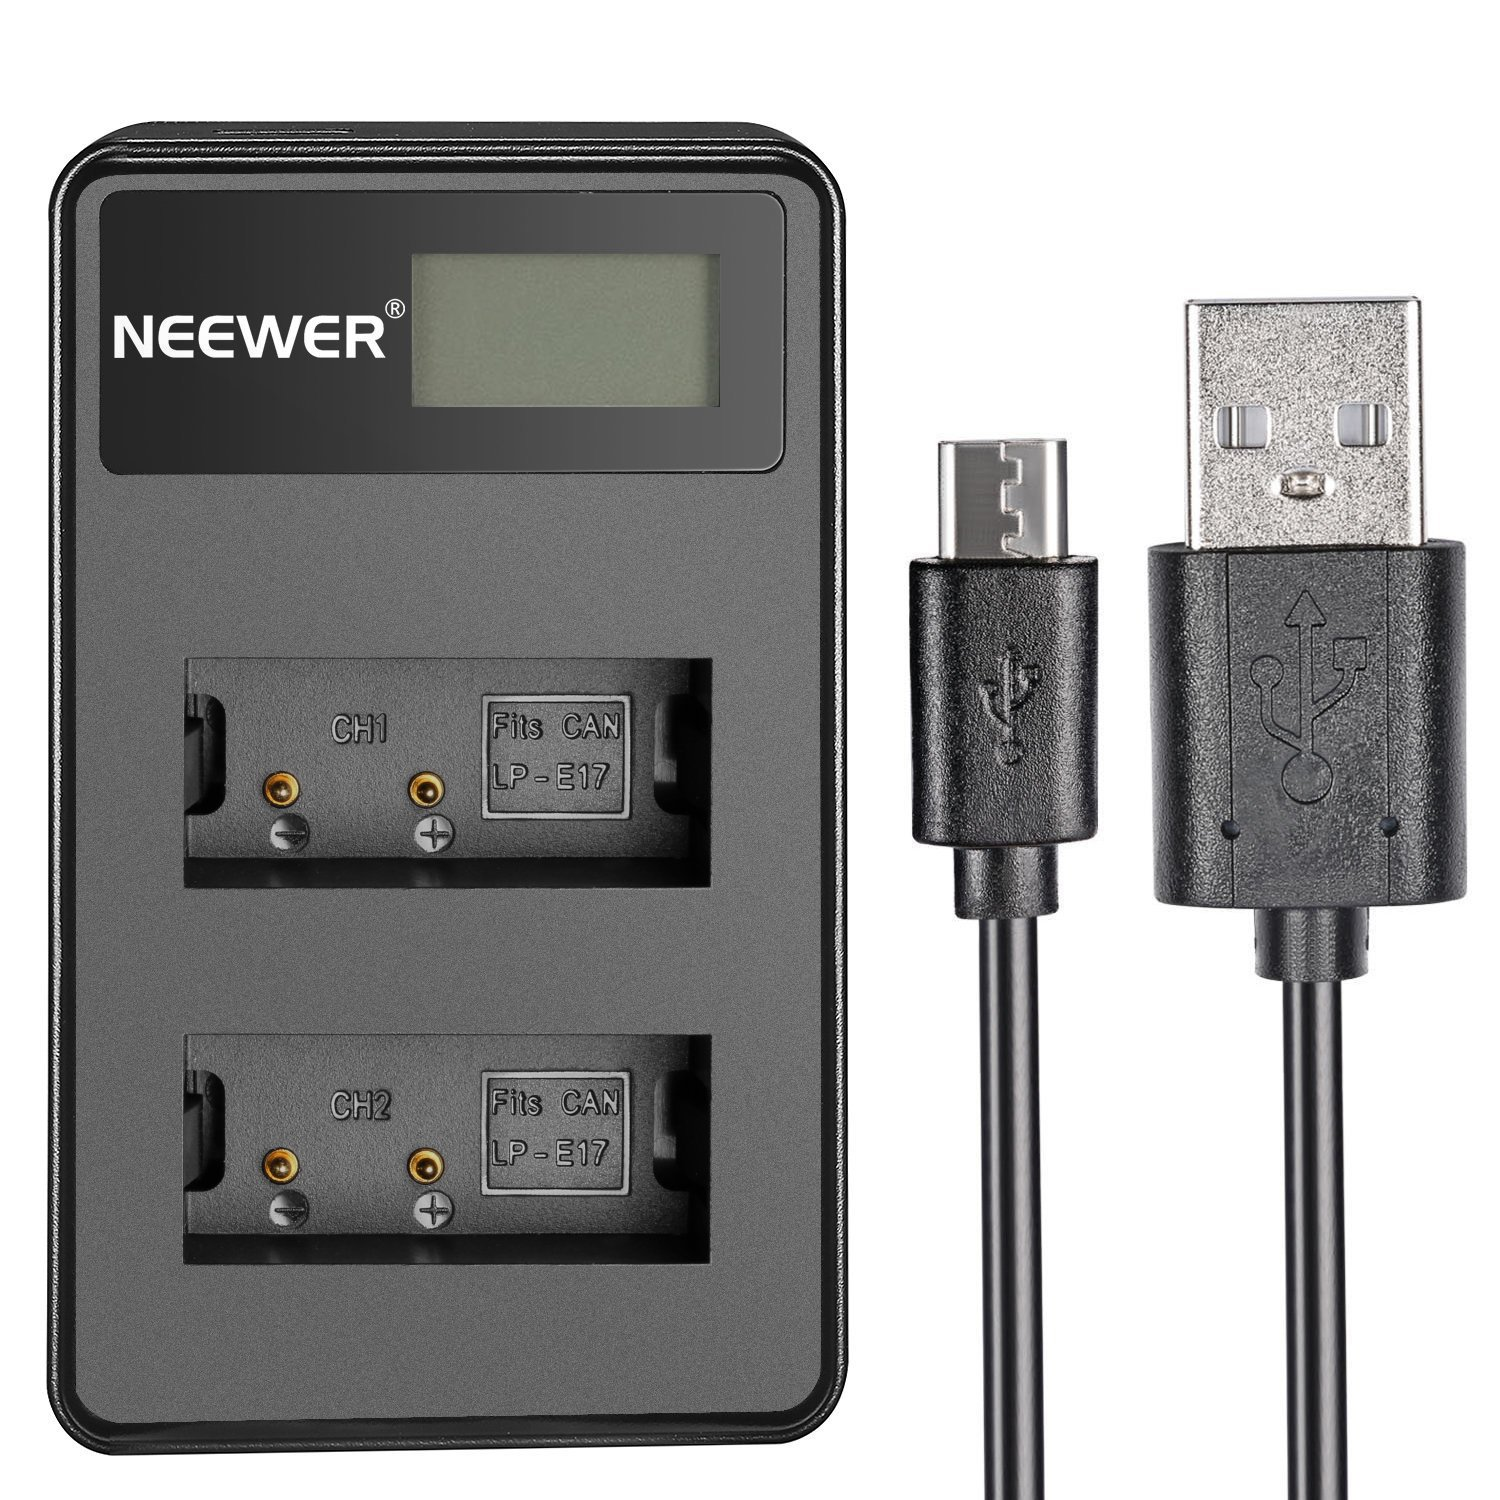 Neewer USB Dual Battery Charger with LED Display 5V/2A Input for Canon LP-E17 Rechargeable Battery, Suitable for Canon EOS M3 EOS M5 EOS Rebel T6i Rebel T6s EOS 750D EOS 760D KISS X8i DSLR,BG-E18 Grip